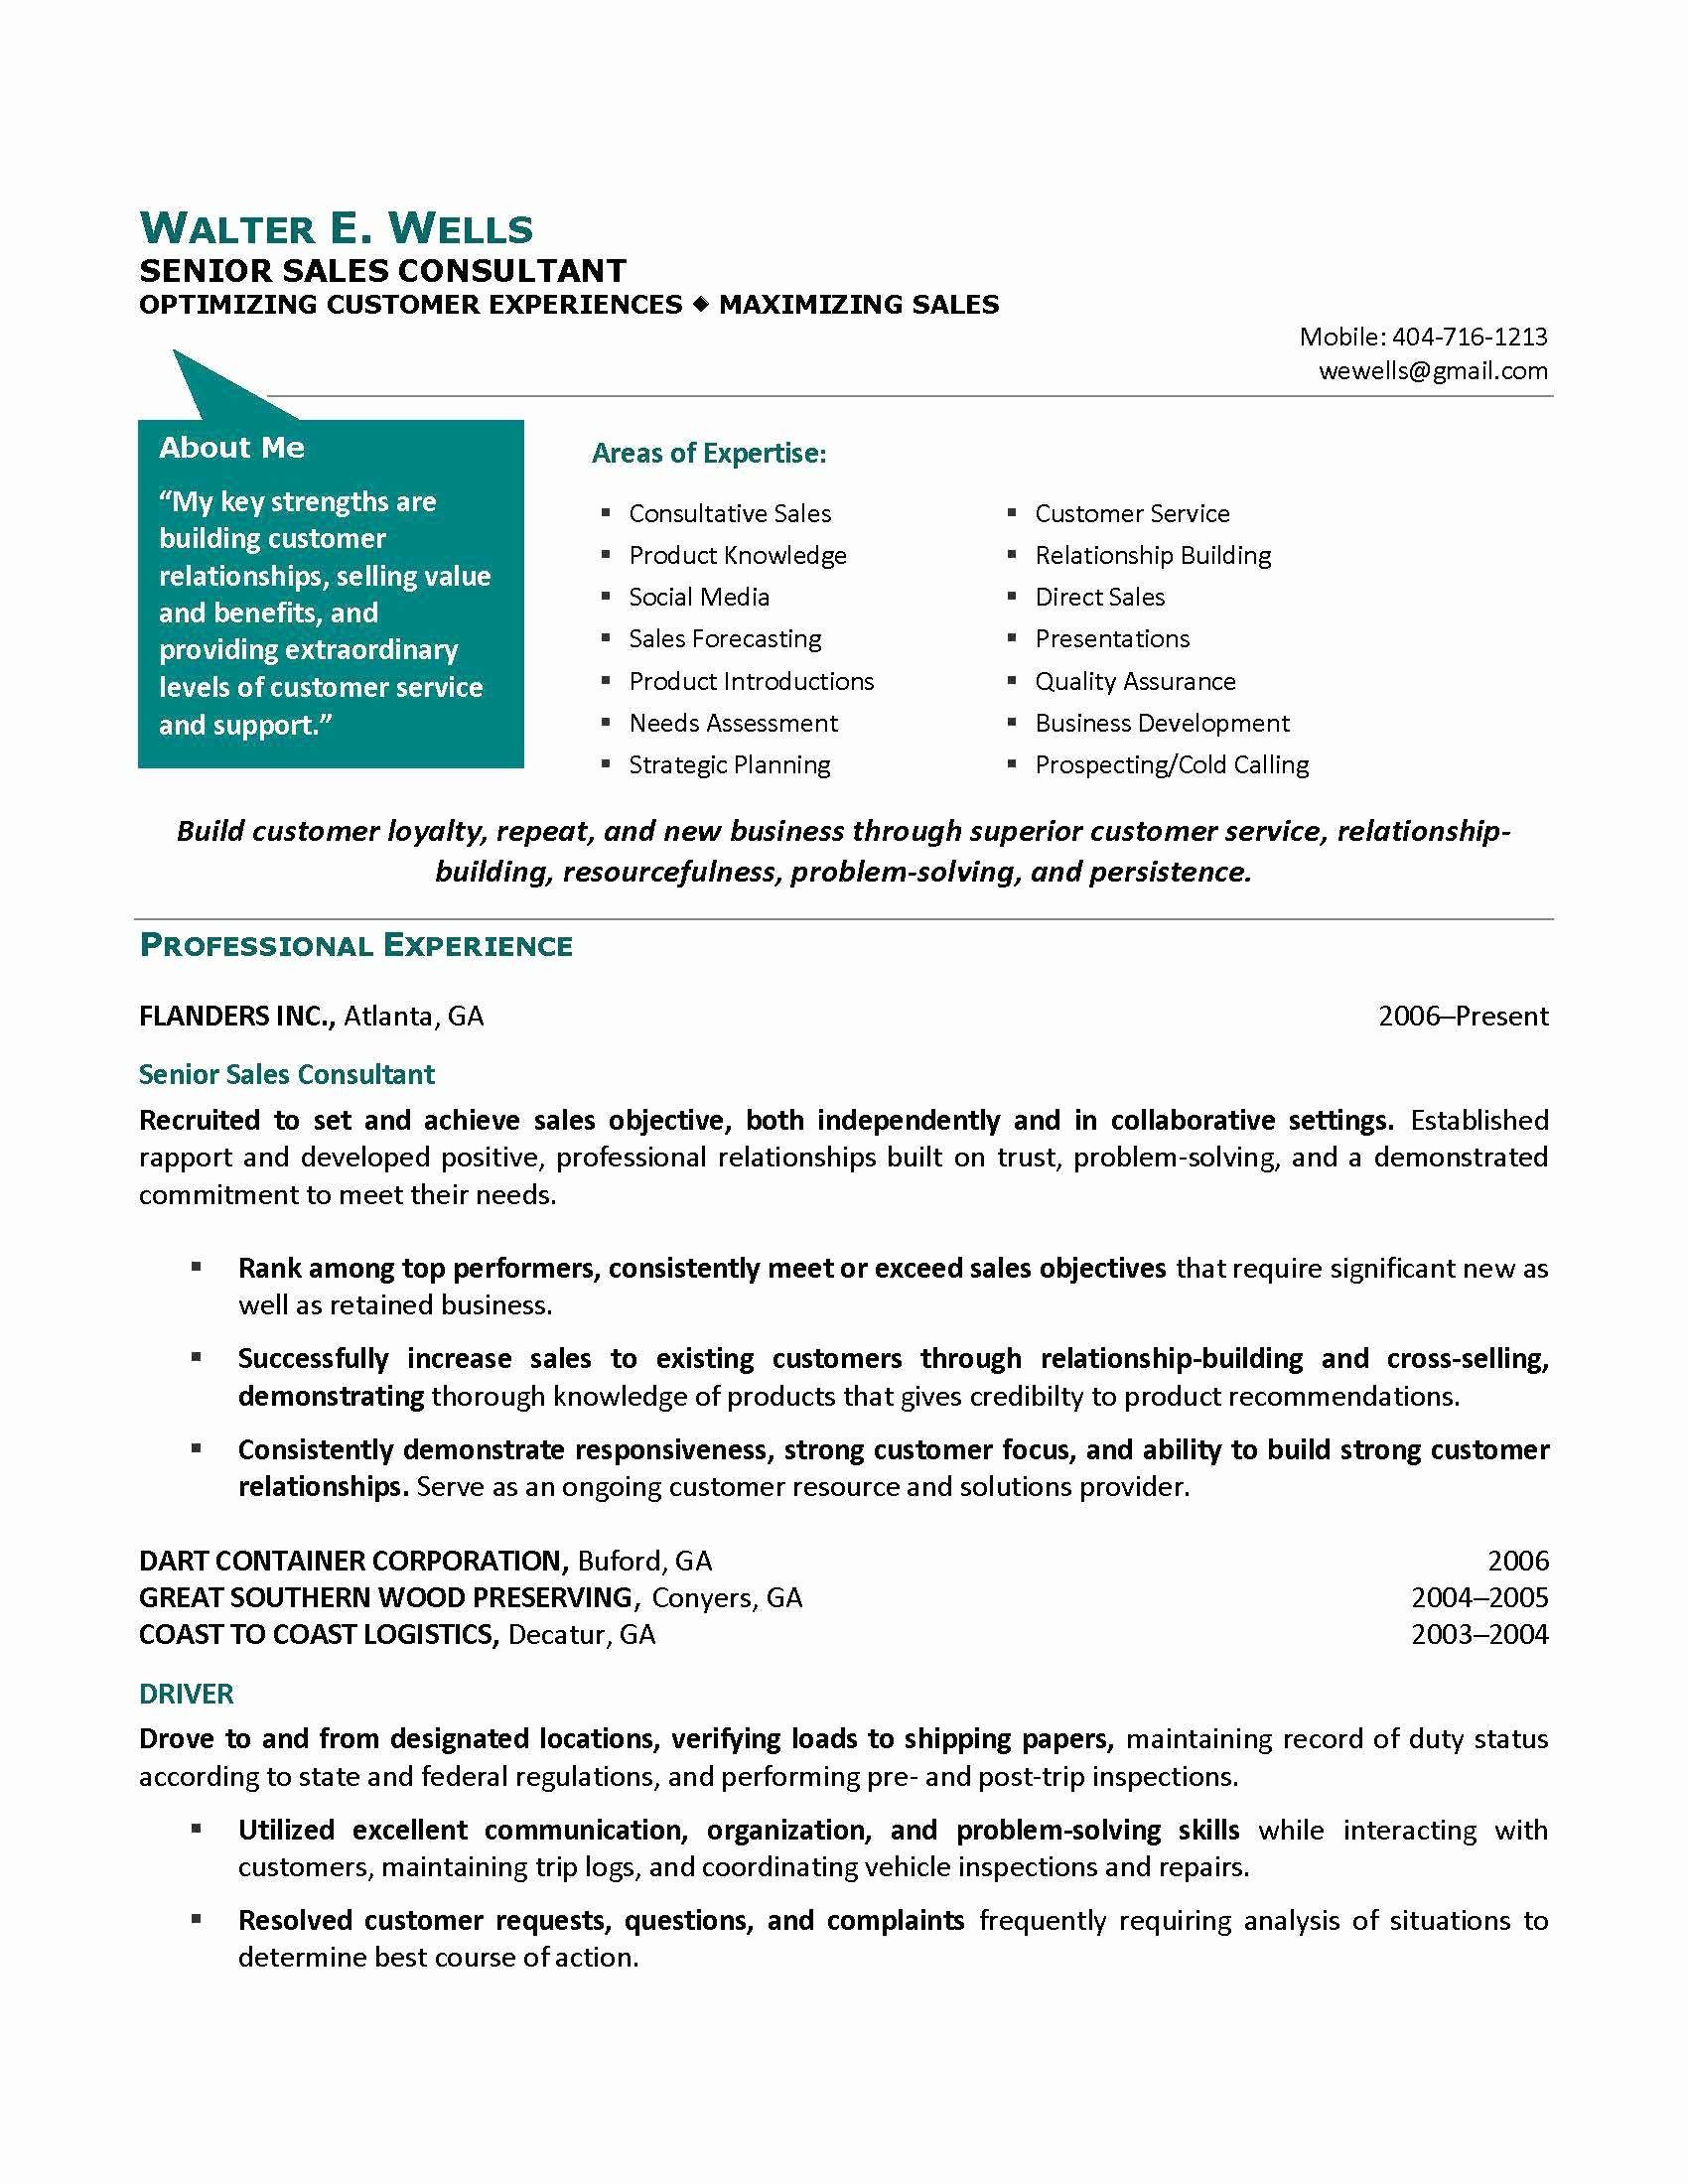 resume writing services houston Collection-resume writers houston tx new executive resume writing services unique 30 lovely resume writing of resume 7-n